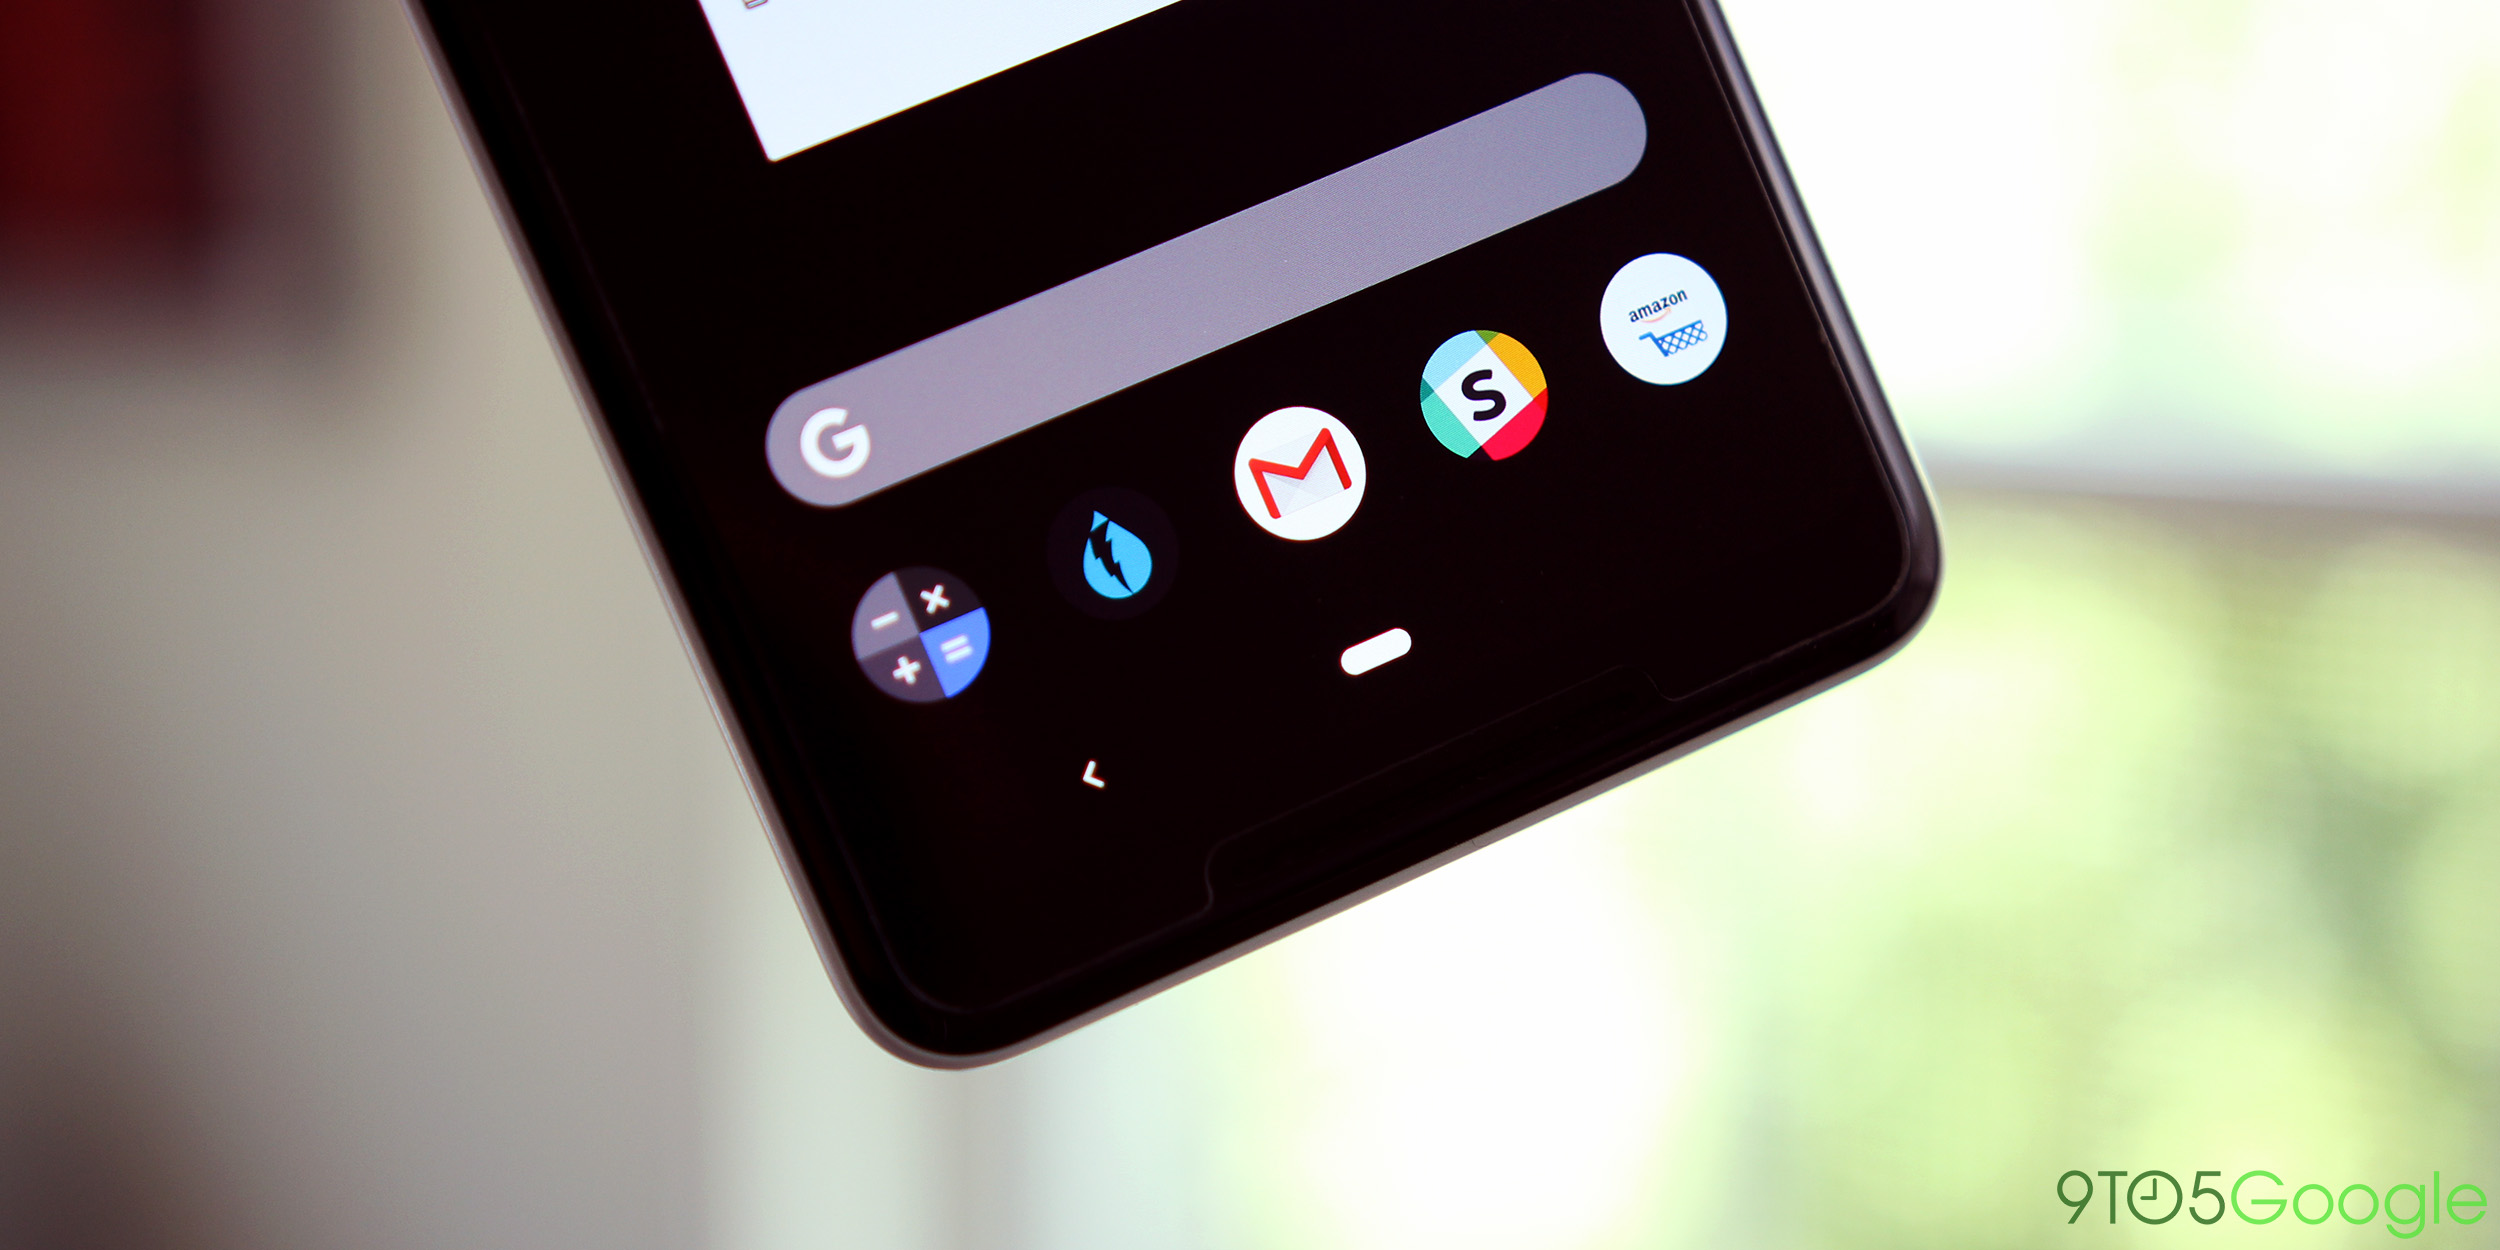 Google is hiding other forms of Android Gesture Navigation